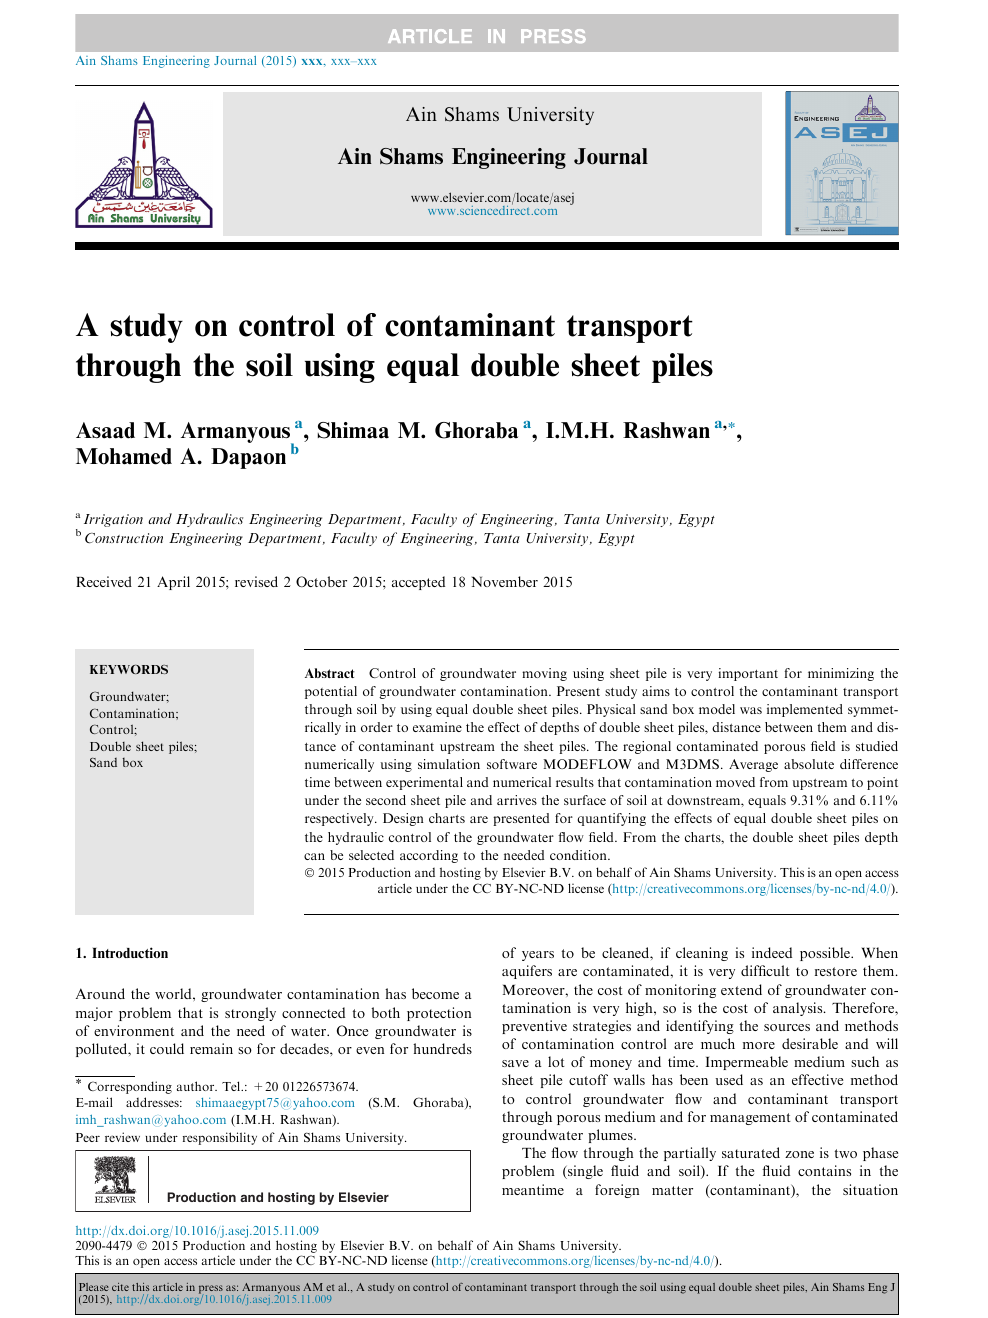 A study on control of contaminant transport through the soil using